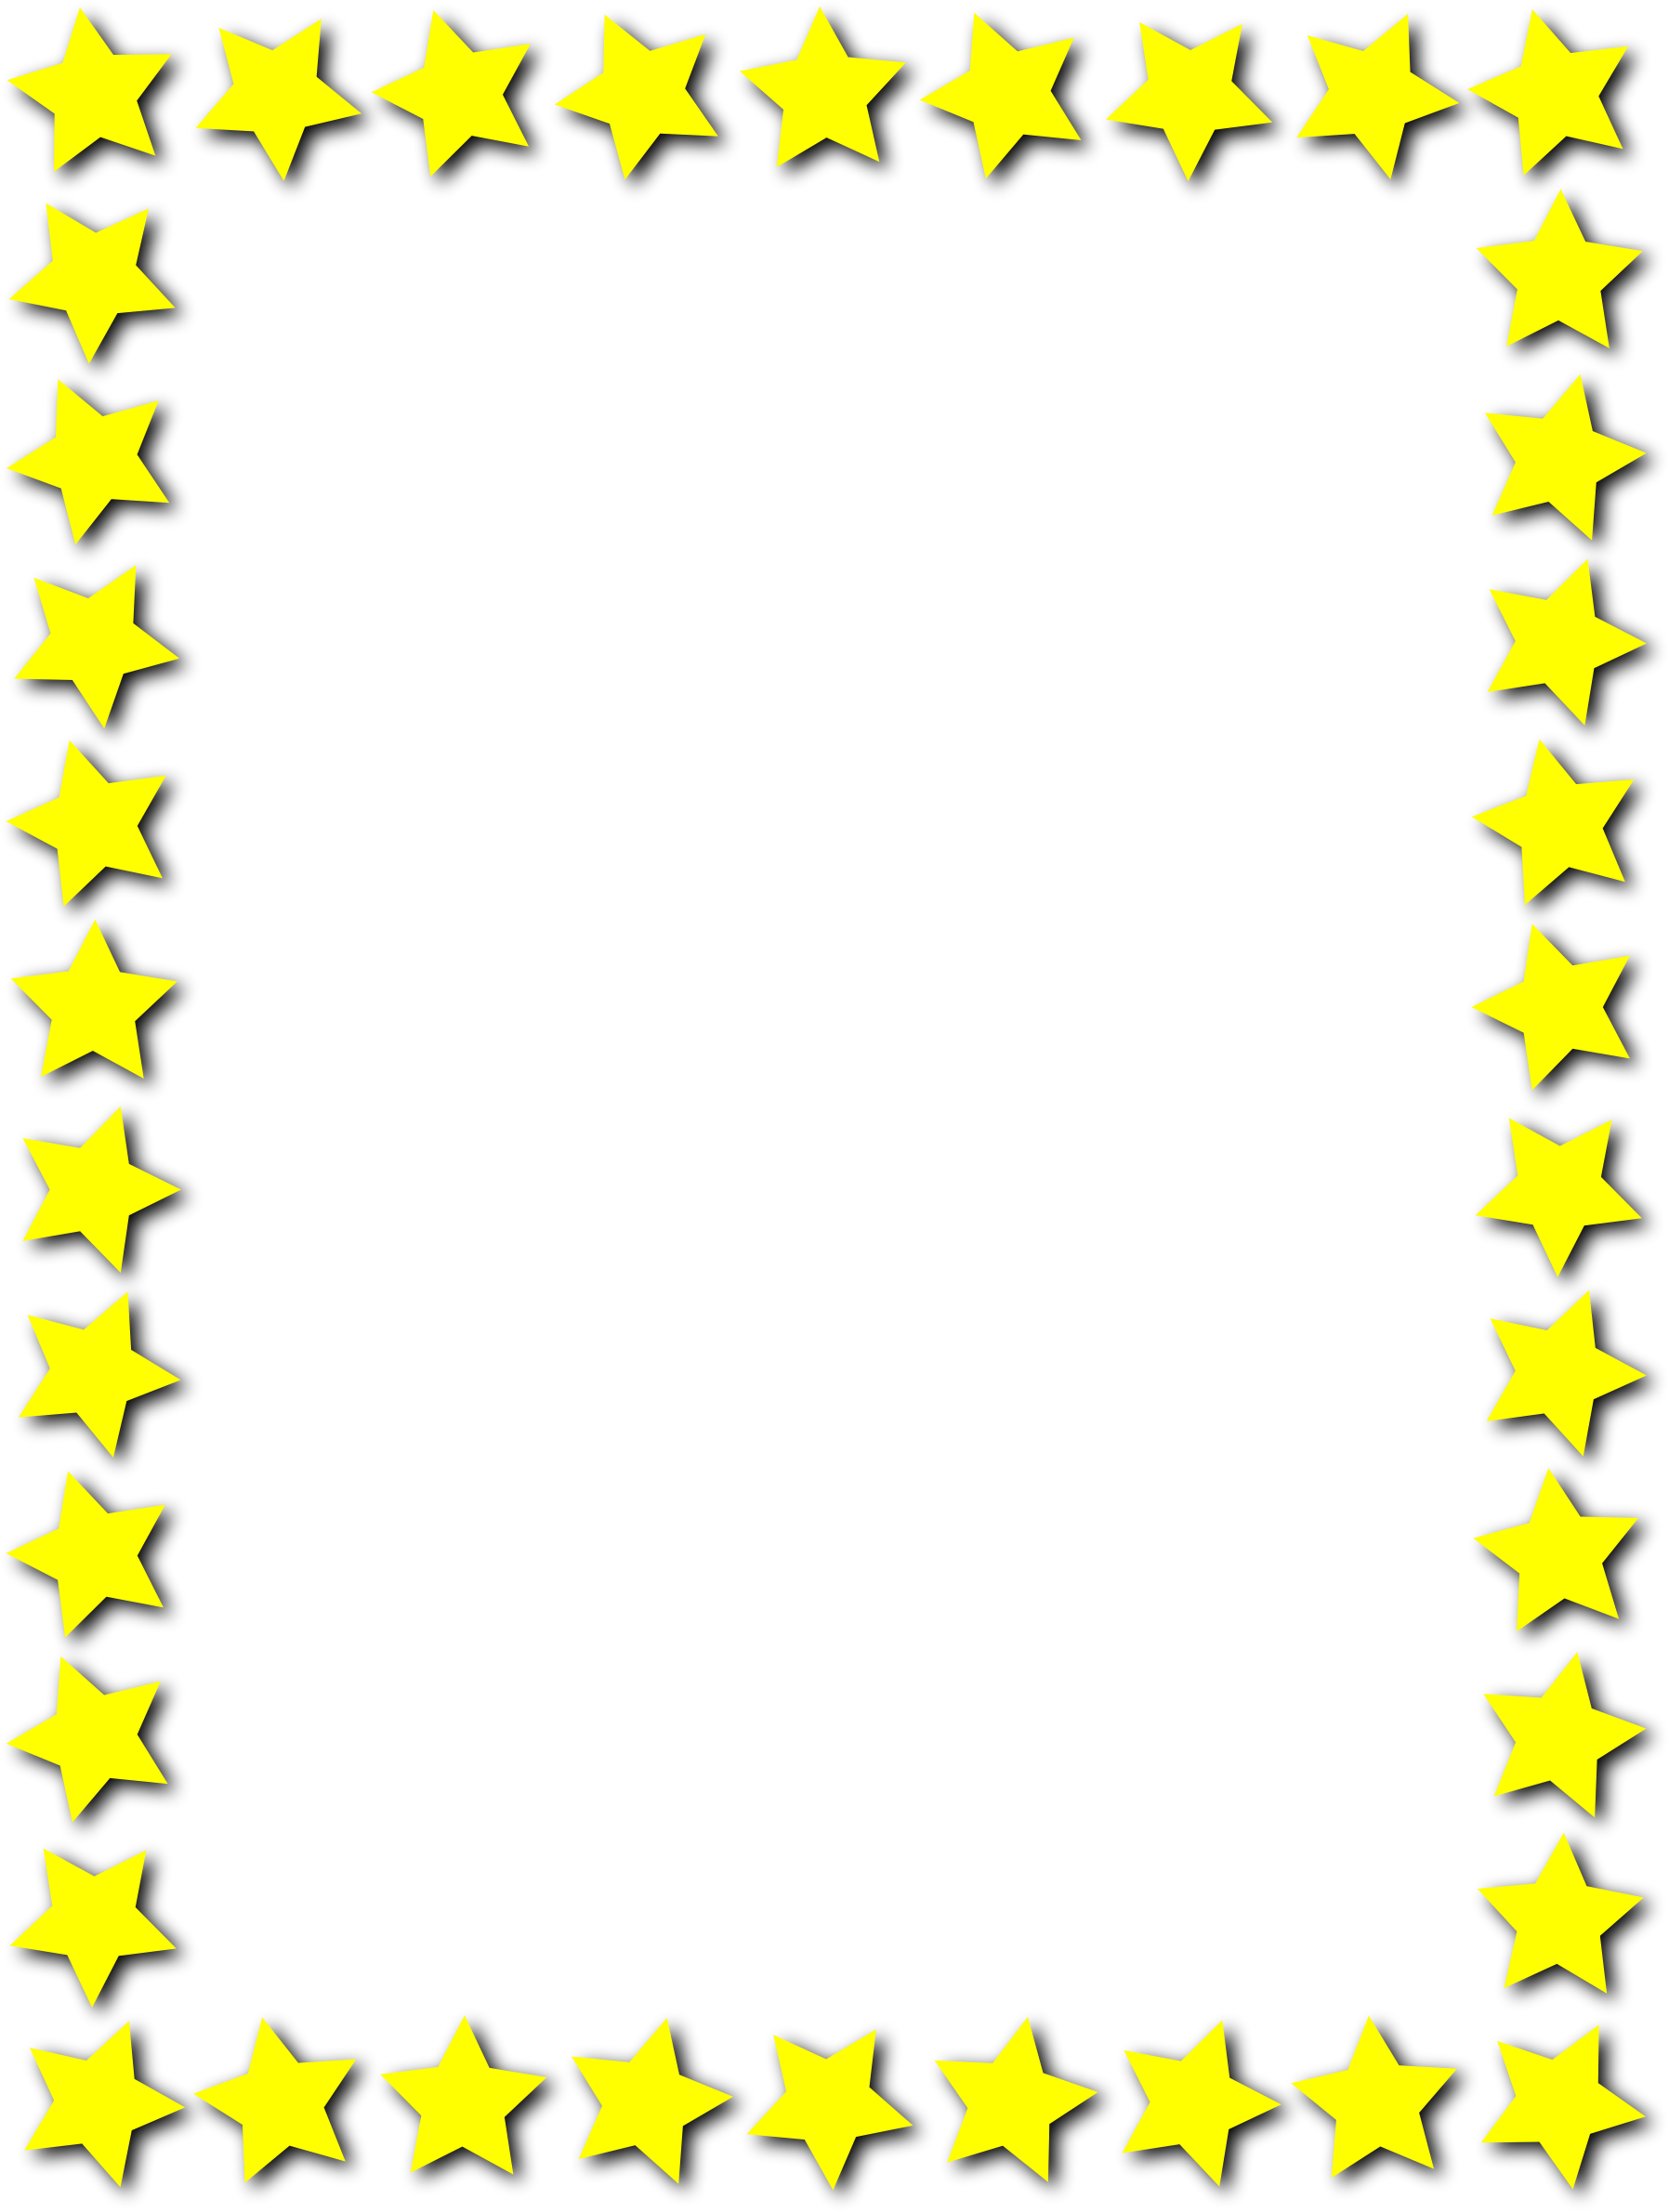 Star frame 2 by Firkin